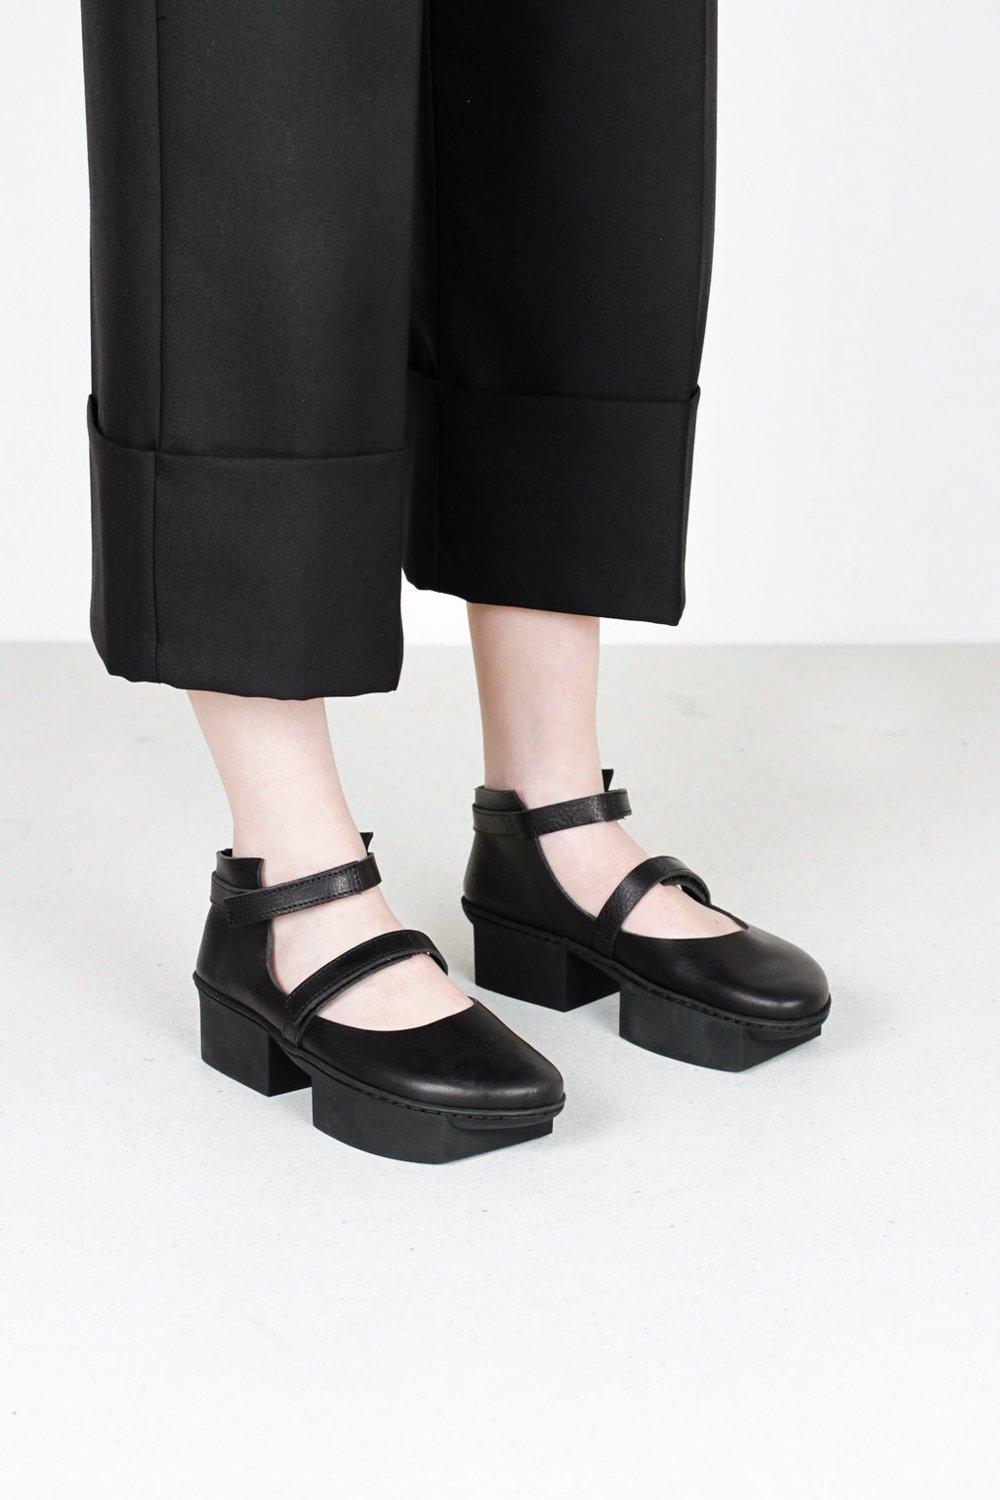 Trippen sisters f waw blk leather shoes